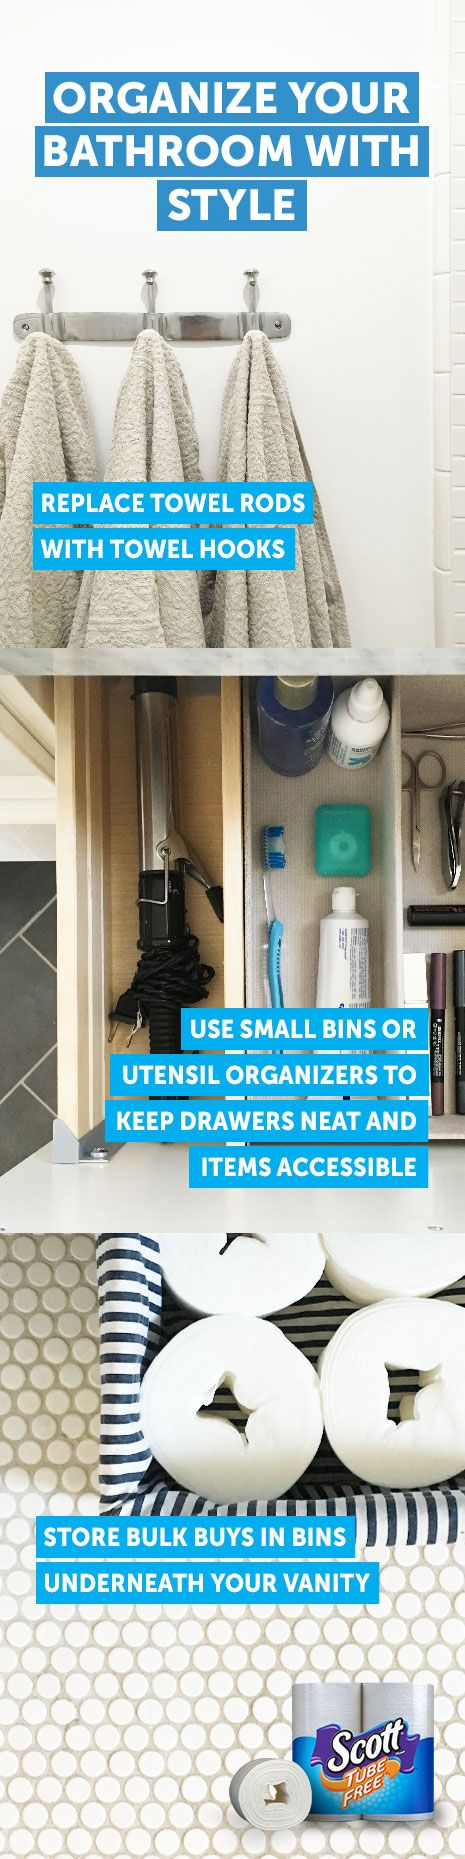 Extend the personality of your home to your bathroom with these smart and stylish organization ideas. For example, store Scott® Tube-Free toilet paper in bins under your vanity. It's an easy and good lookin' way to #TossTheTube, and one that'll blend with your décor.